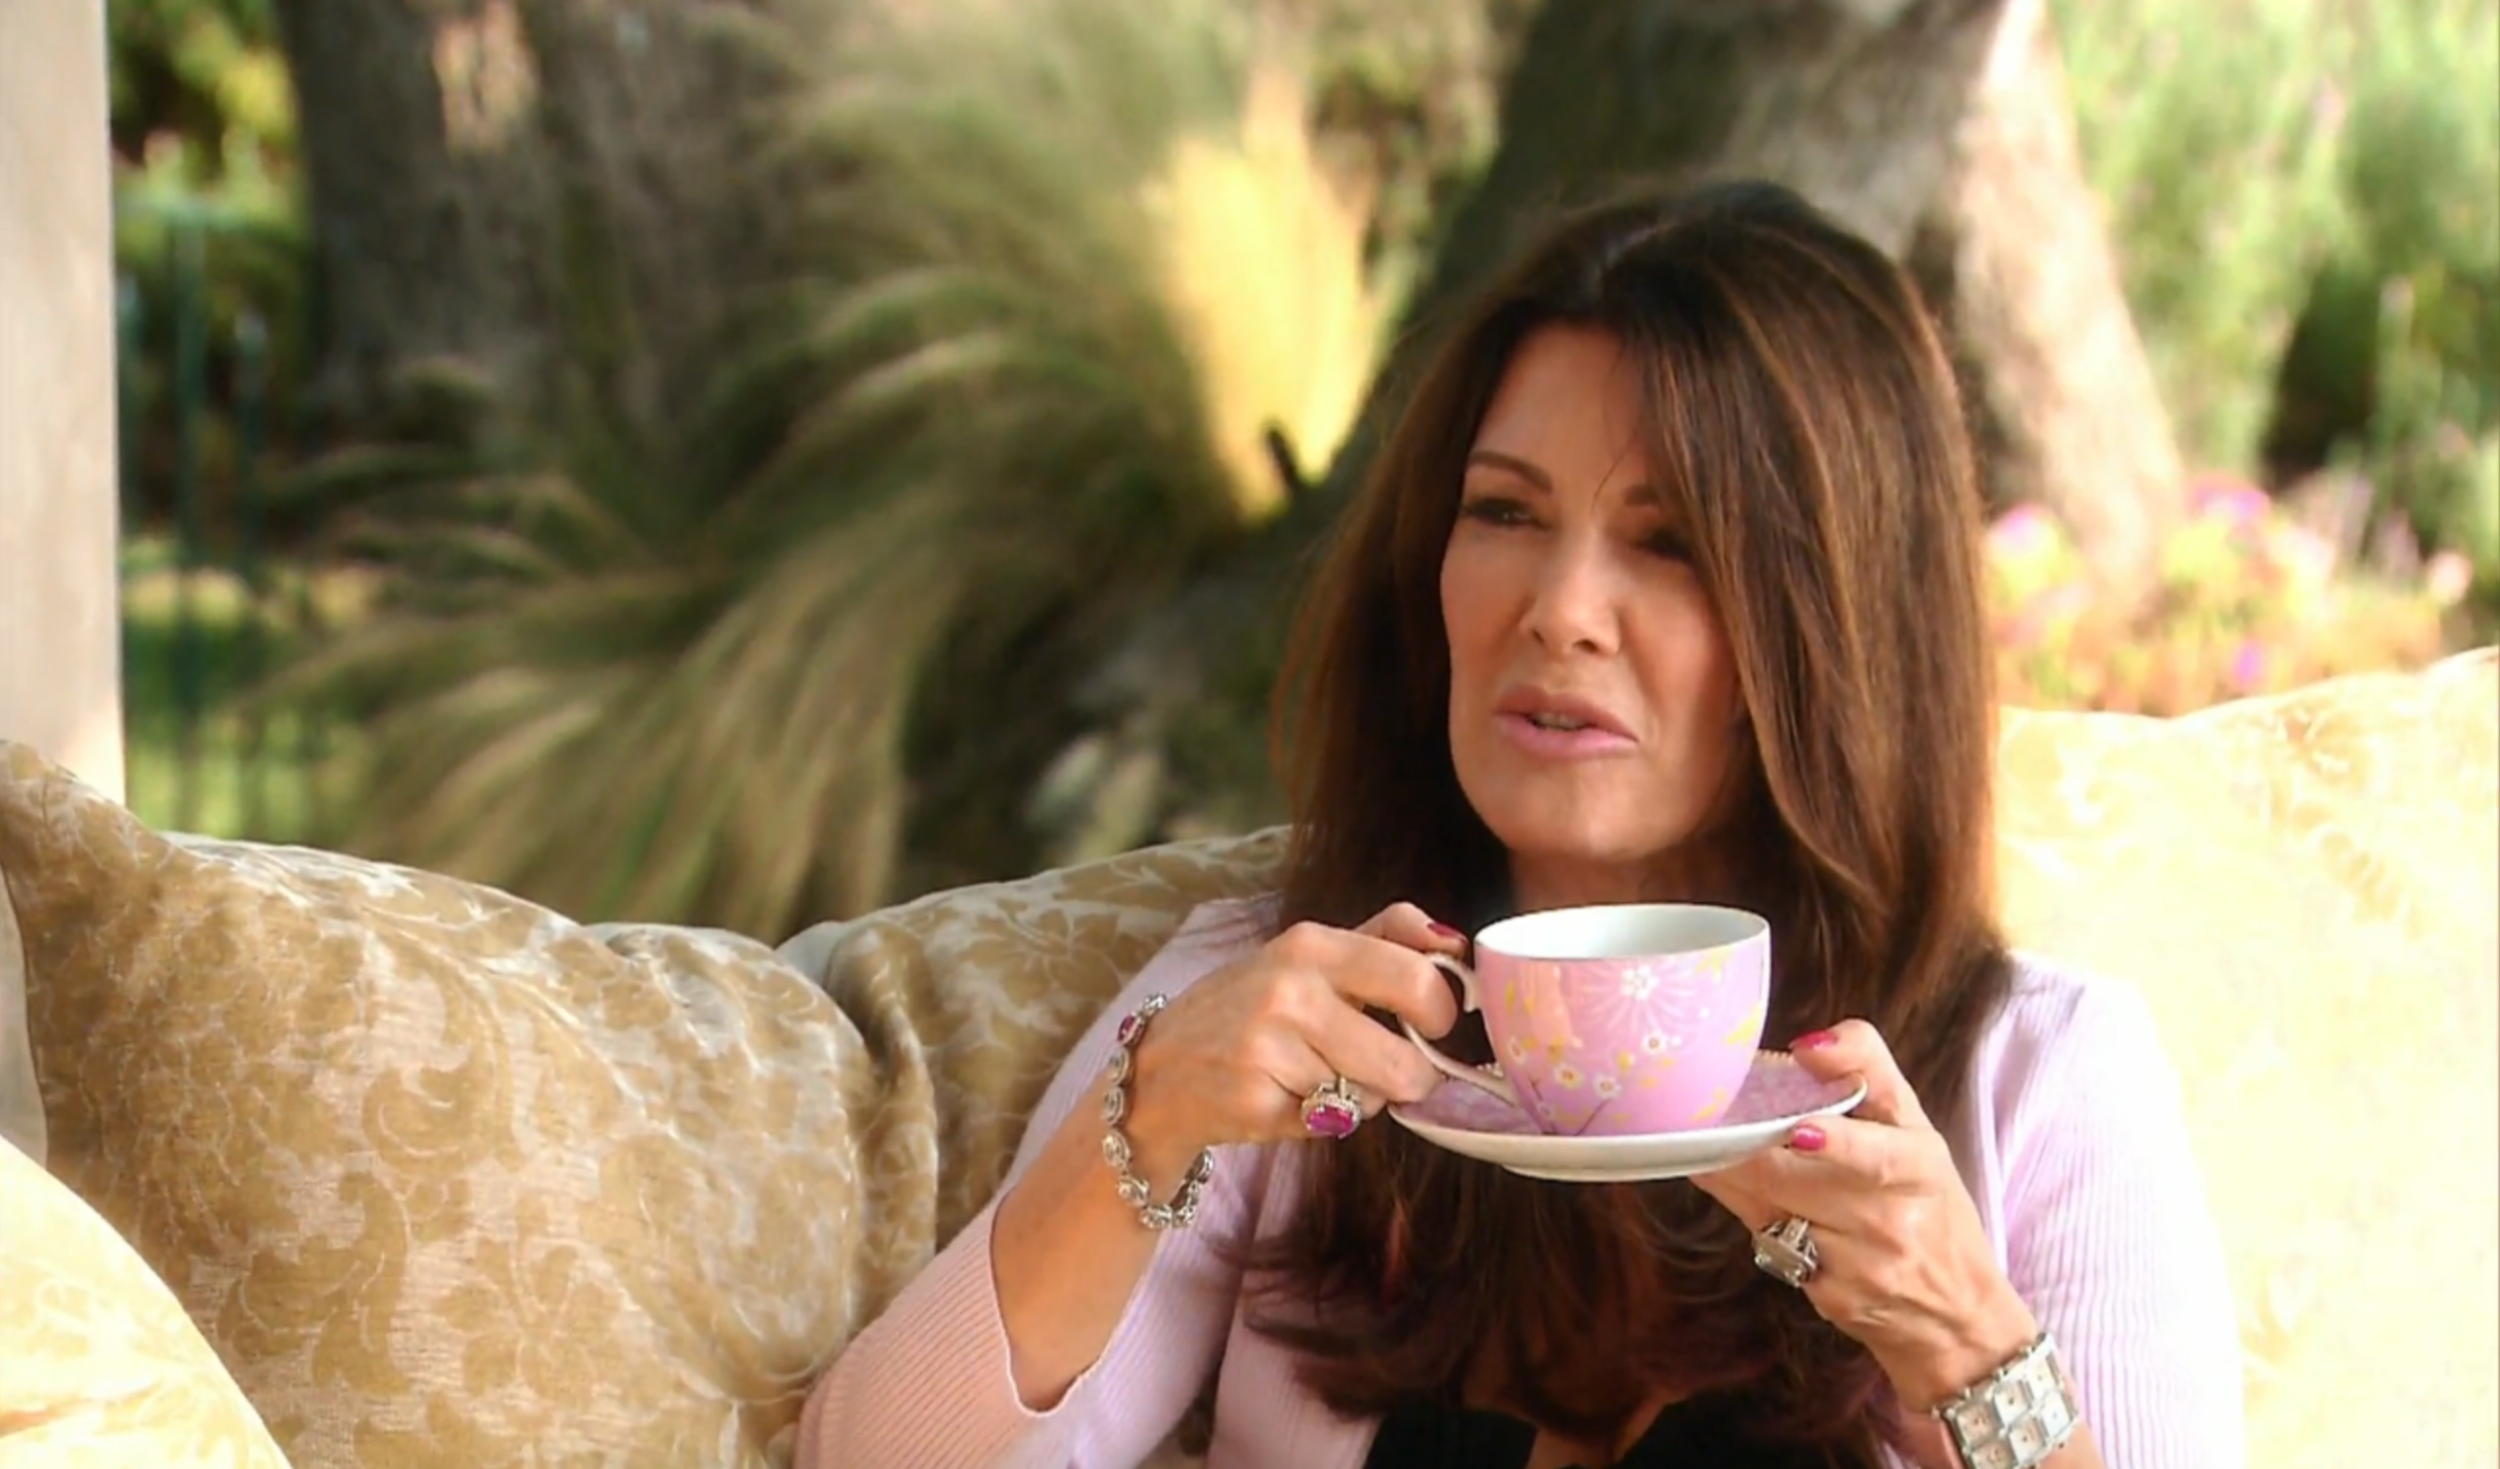 lisa-vanderpump-questioning-kathryn-edwards